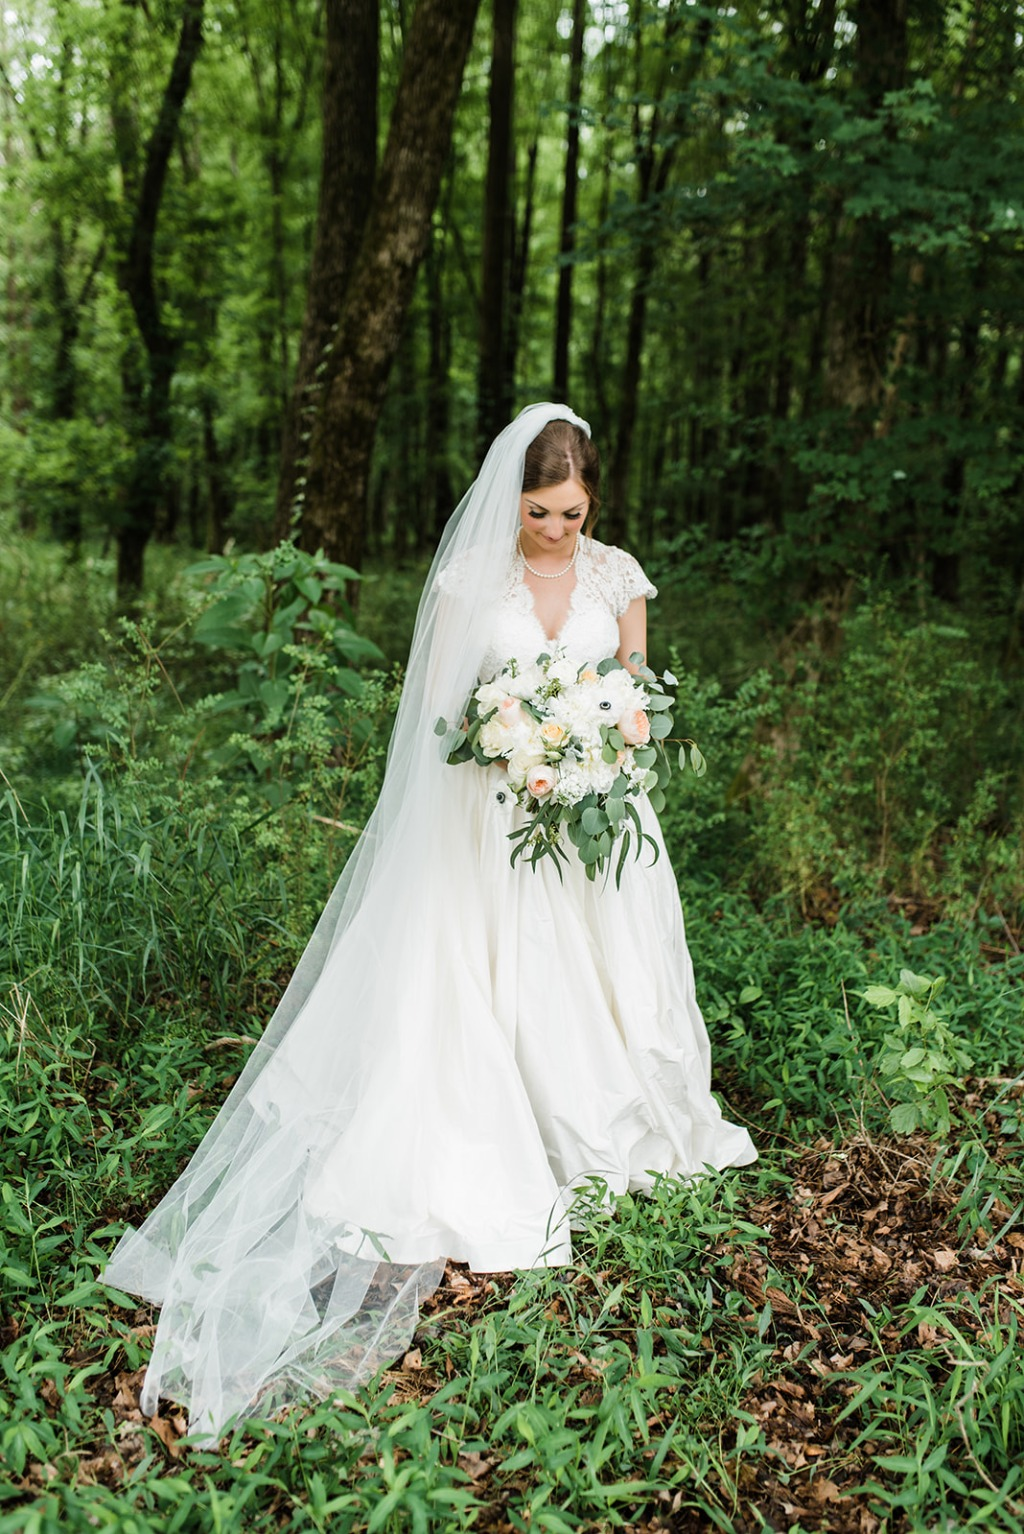 Lauren + Addison's Sonnet House Wedding. Custom Lea-Ann Belter gown. Bridal shop: White Dresses | photographer: Laura Wilkerson Photography